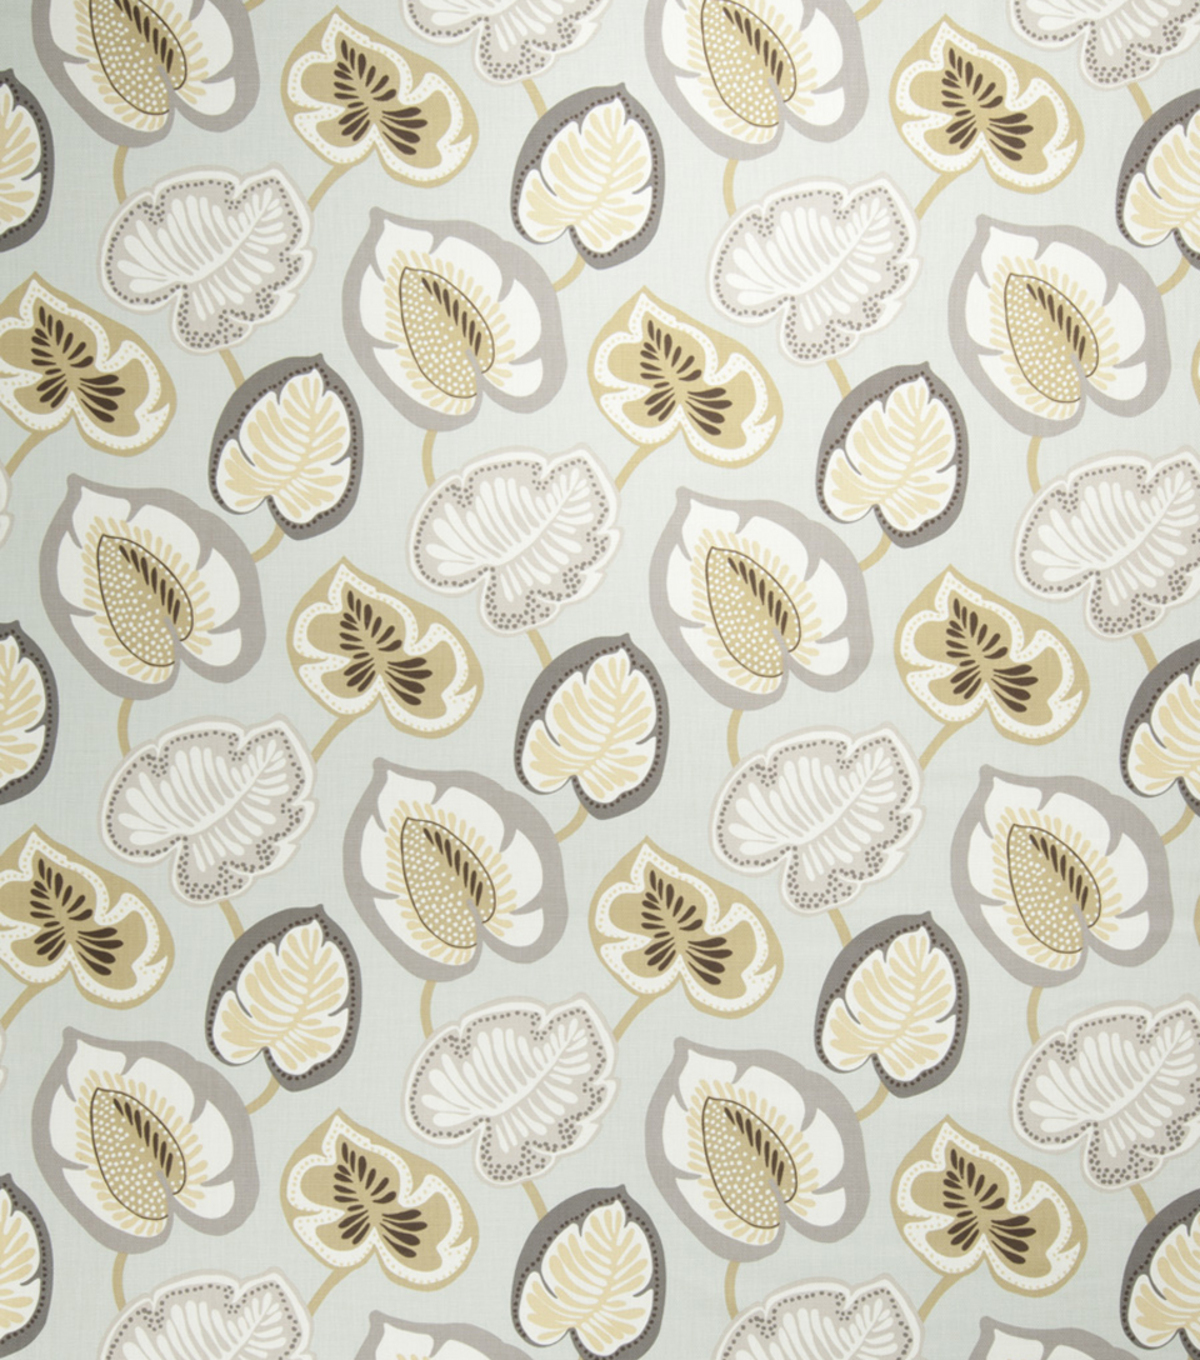 Home Decor 8\u0022x8\u0022 Fabric Swatch-Eaton Square Coldwater Celadon